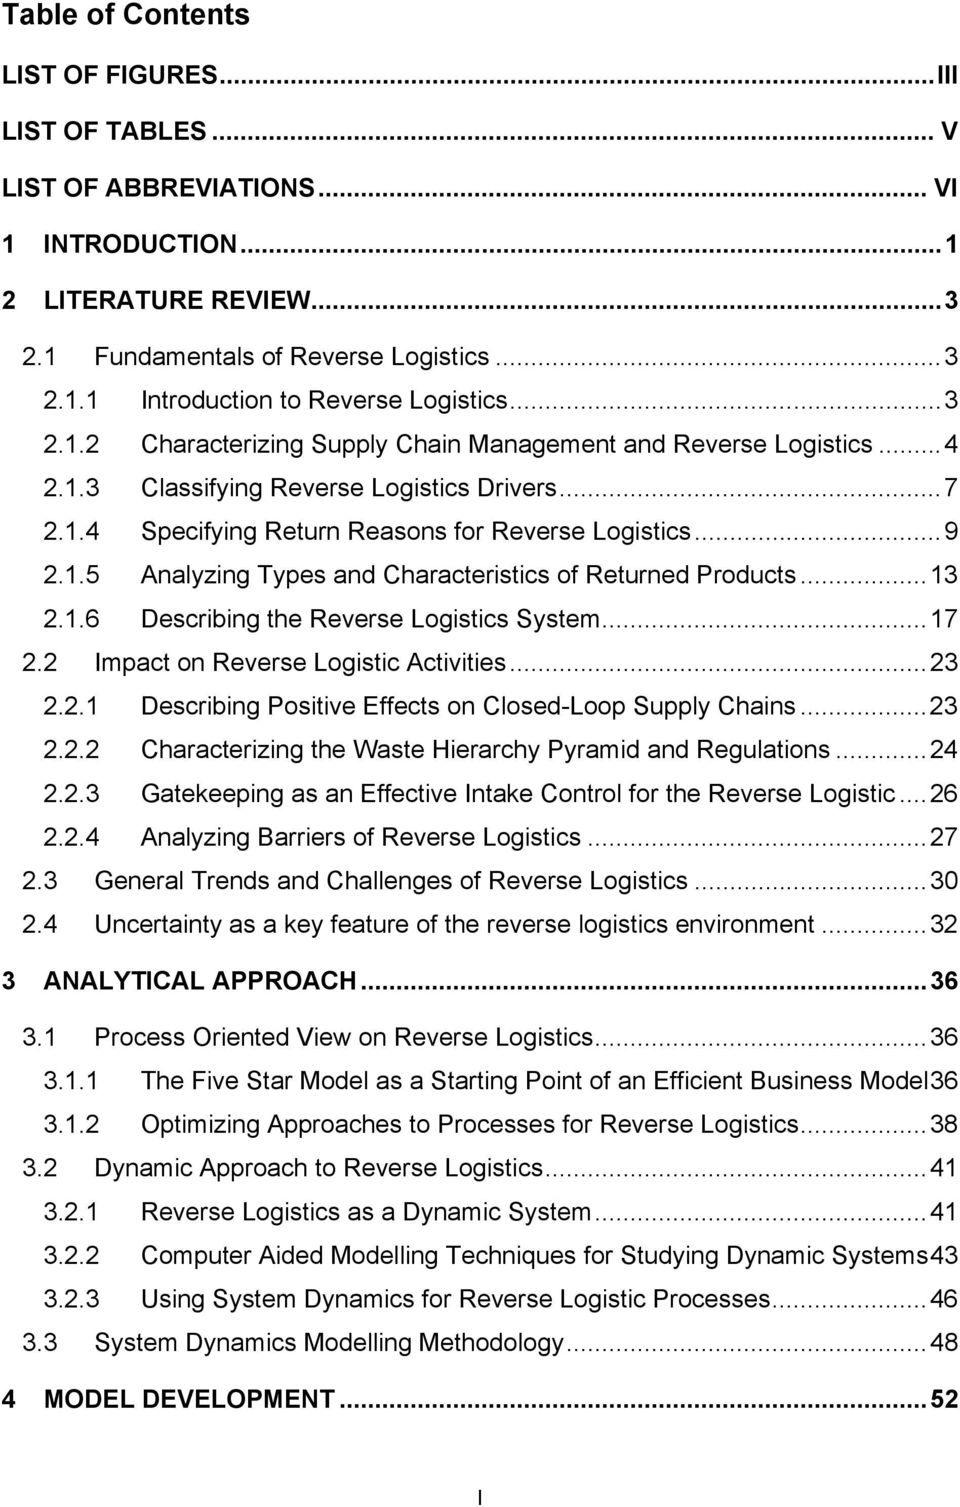 .. 13 2.1.6 Describing the Reverse Logistics System... 17 2.2 Impact on Reverse Logistic Activities... 23 2.2.1 Describing Positive Effects on Closed-Loop Supply Chains... 23 2.2.2 Characterizing the Waste Hierarchy Pyramid and Regulations.